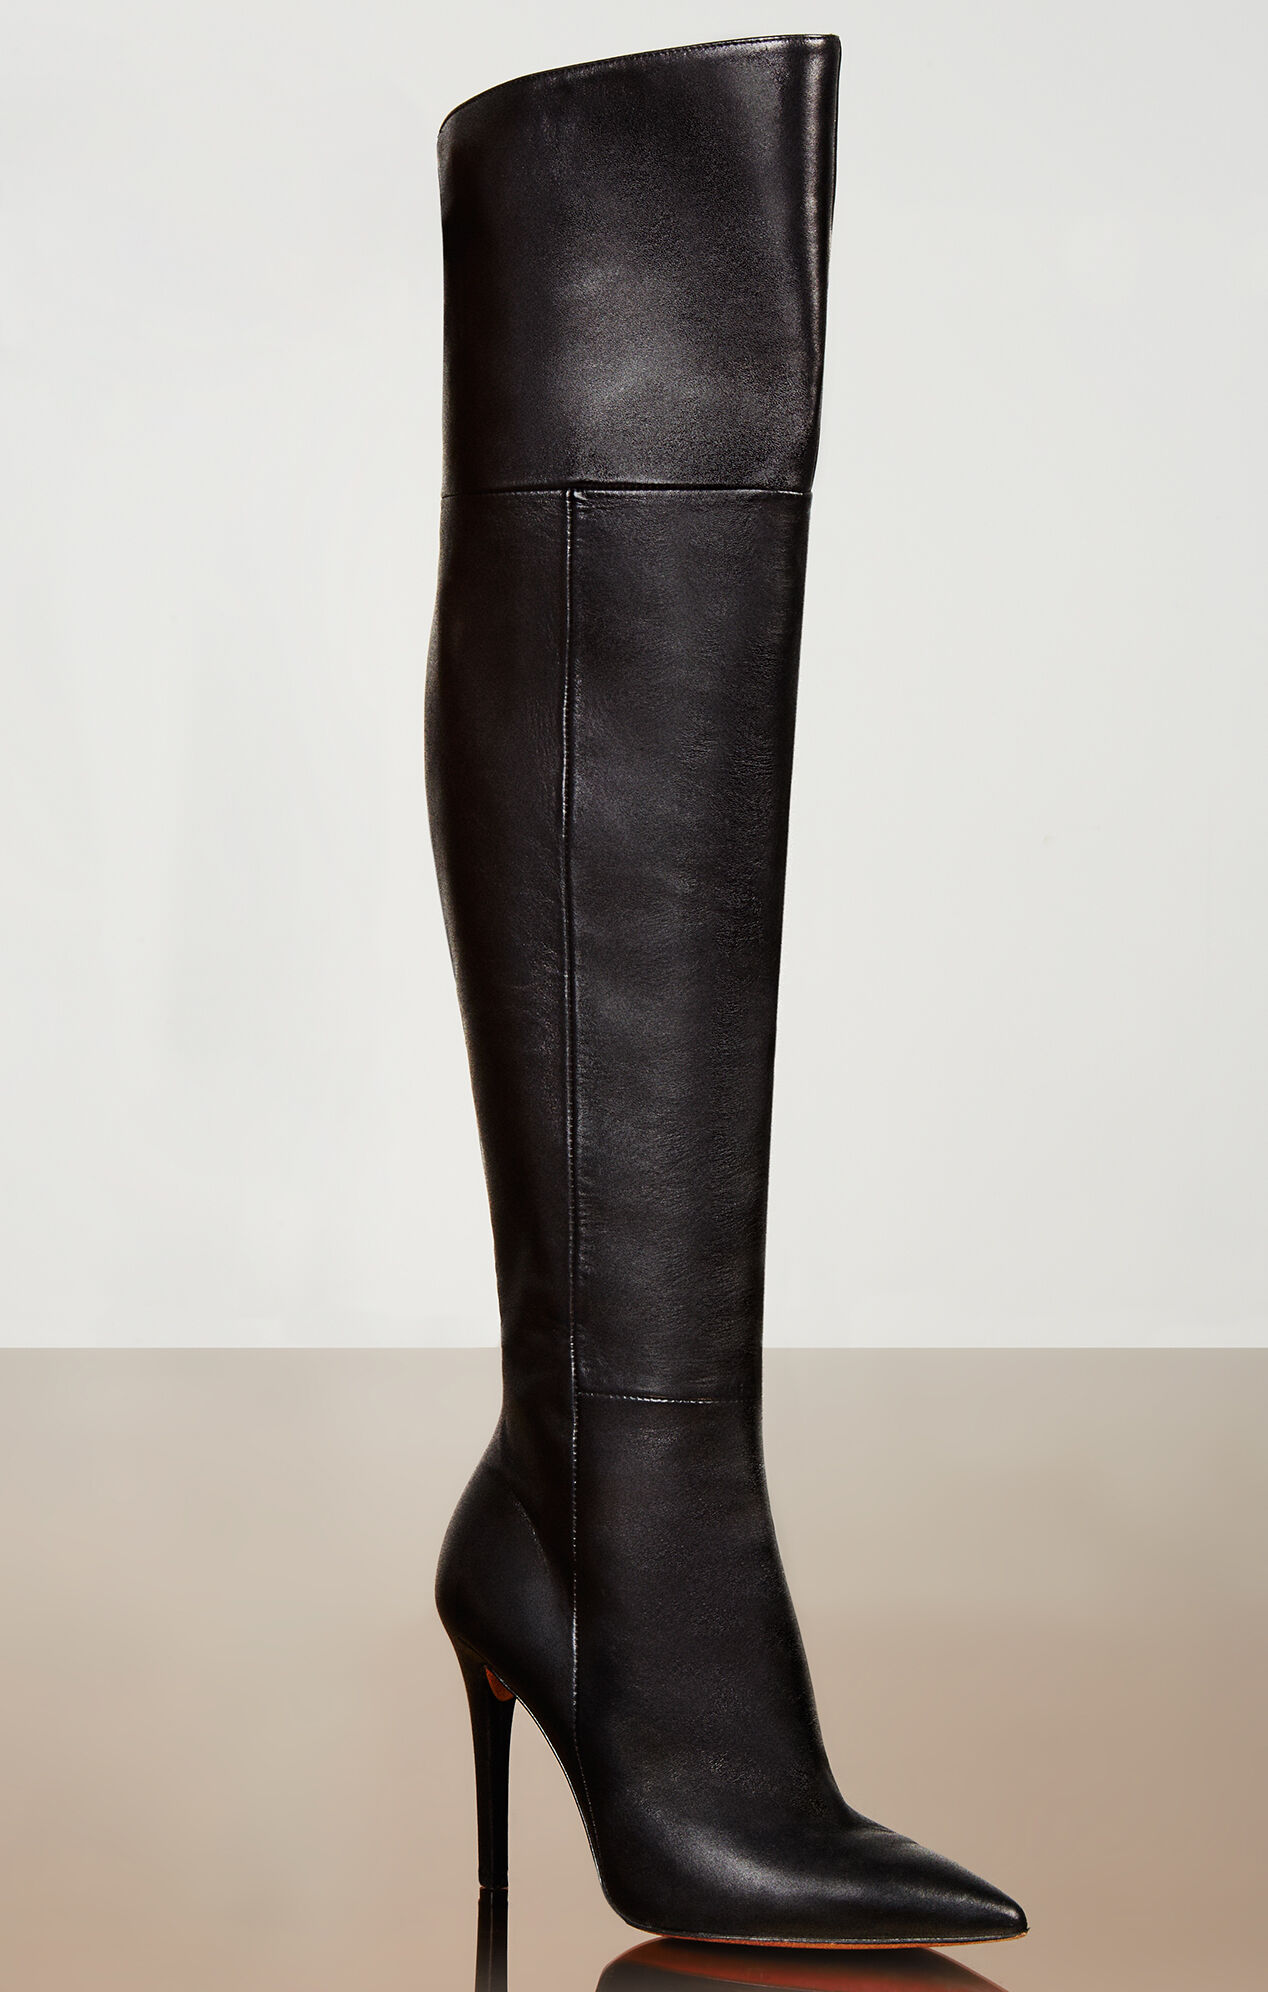 Find a great selection of women's knee-high boots at 440v.cf Browse tall cowboy boots, rain boots, riding boots and more. Totally free shipping and returns on all the best brands including Steve Madden, Sam Edelman, and Blondo.